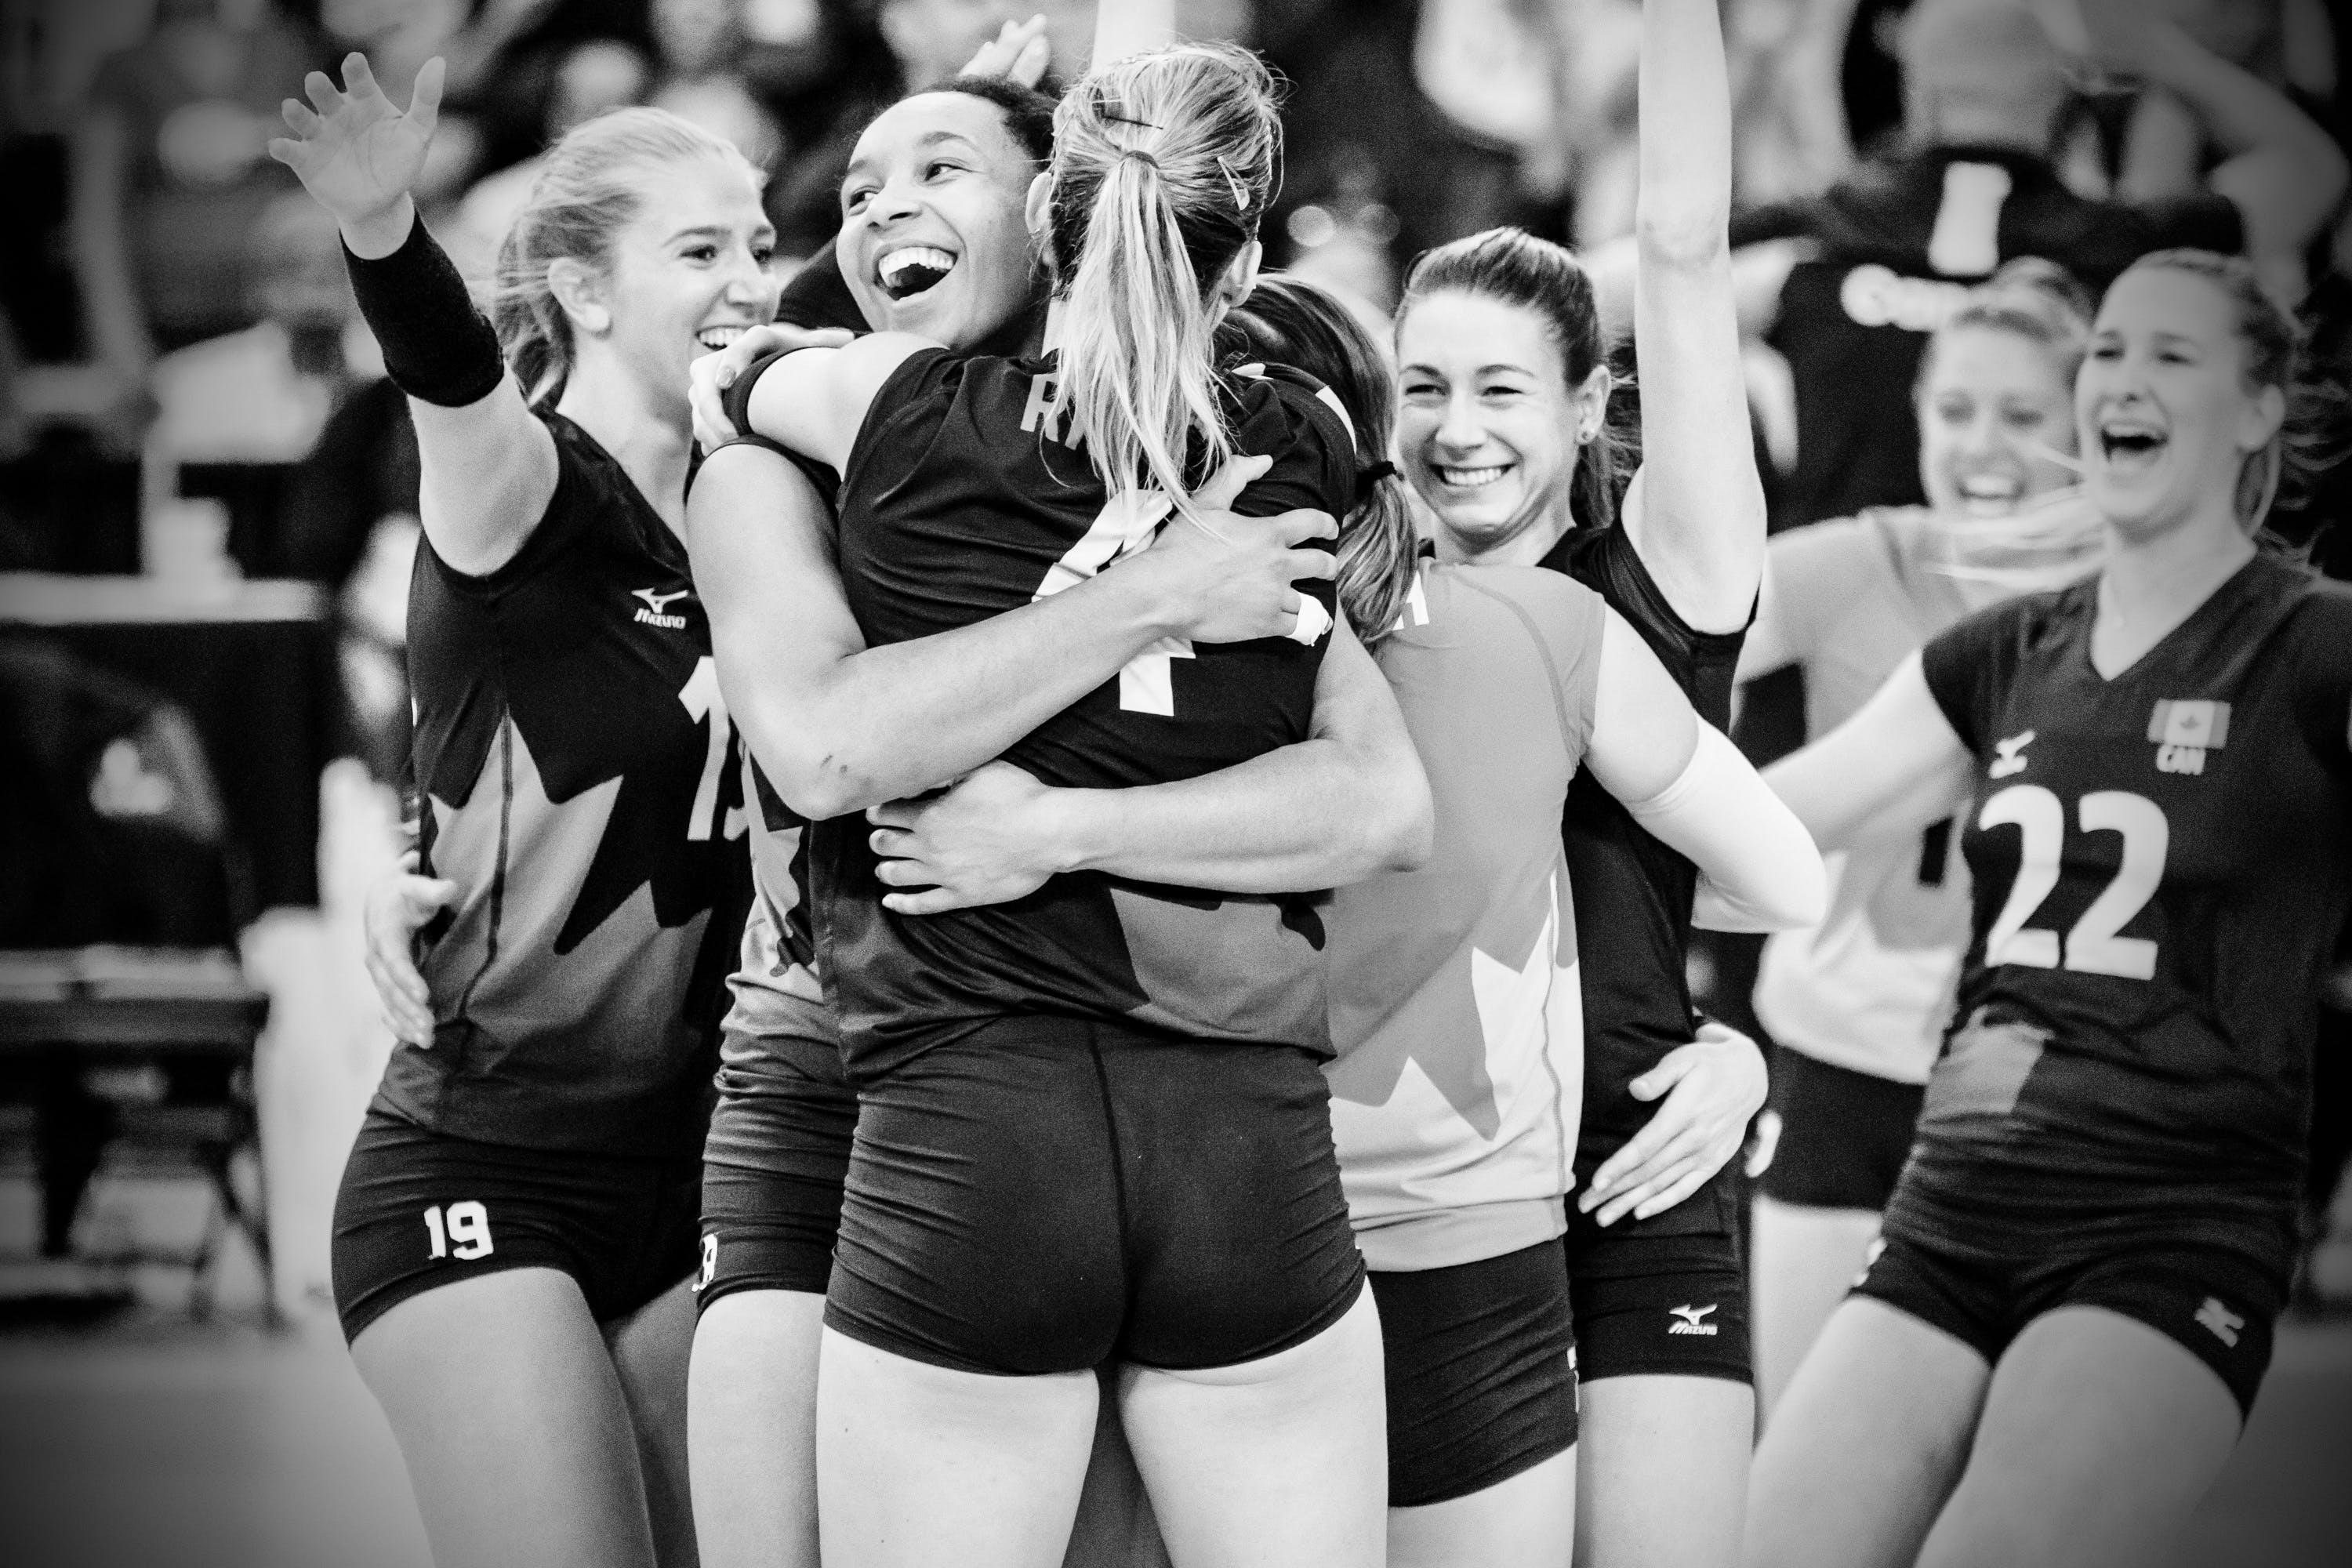 Volleyball Player Hugging Each Other